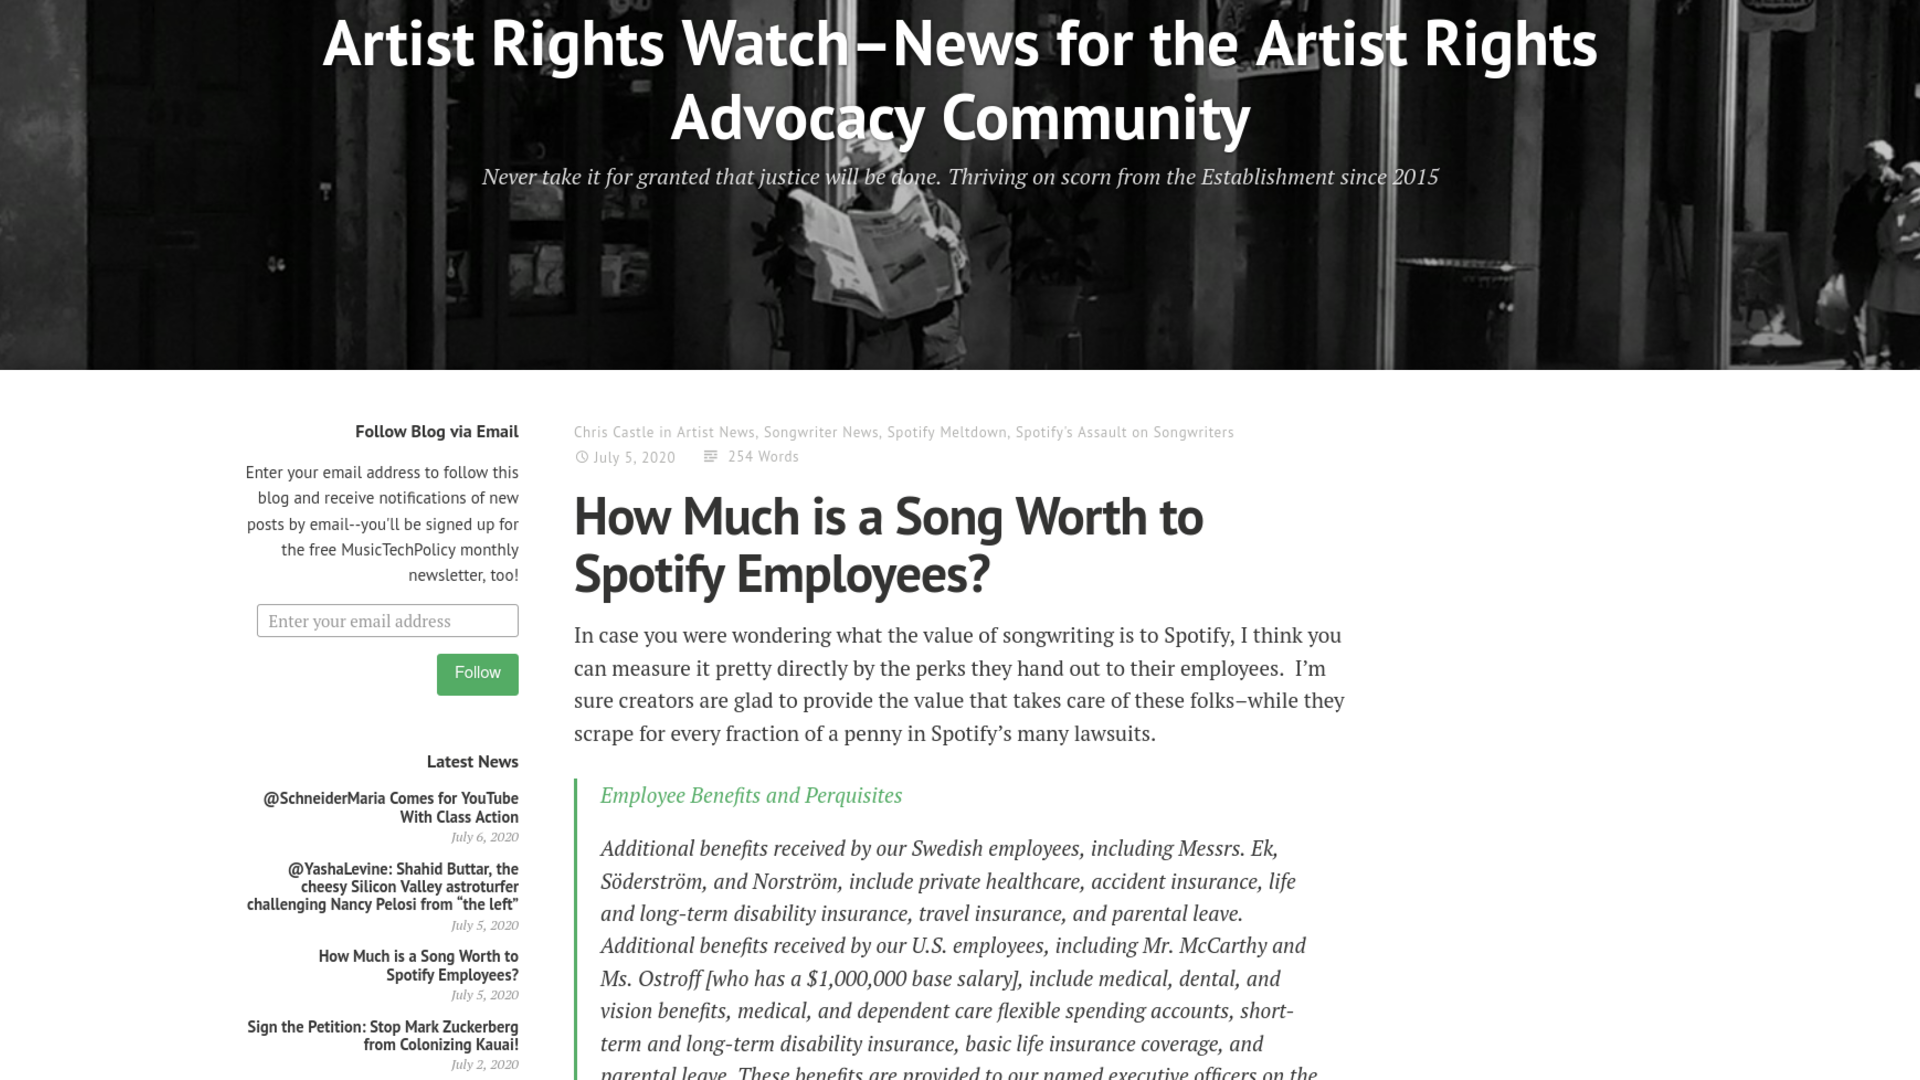 Fairness Rocks News How Much is a Song Worth to Spotify Employees?